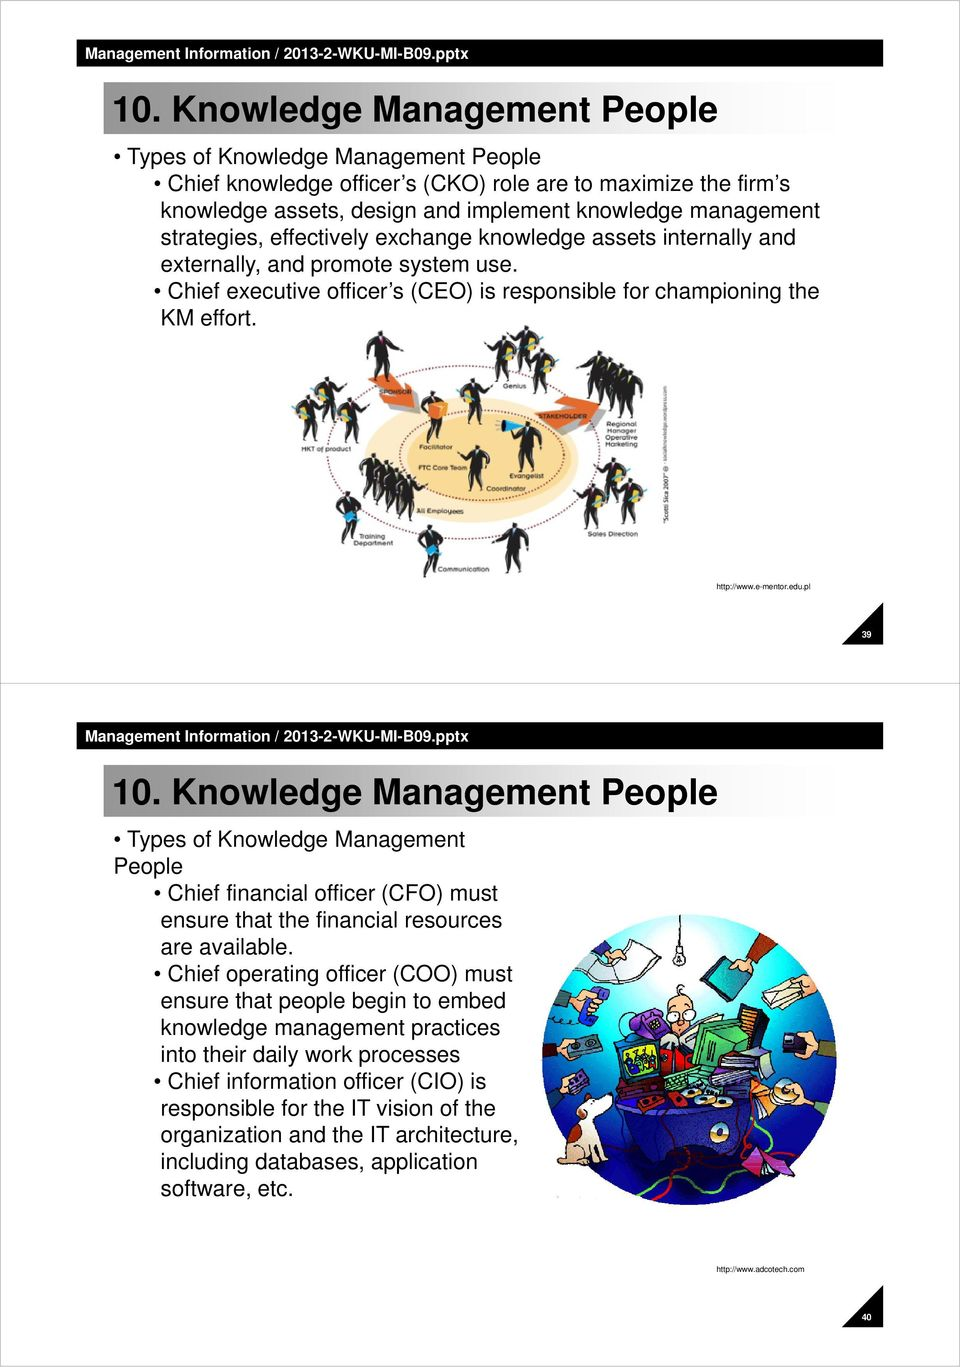 edu.pl 39 10. Knowledge Management People Types of Knowledge Management People Chief financial officer (CFO) must ensure that the financial resources are available.